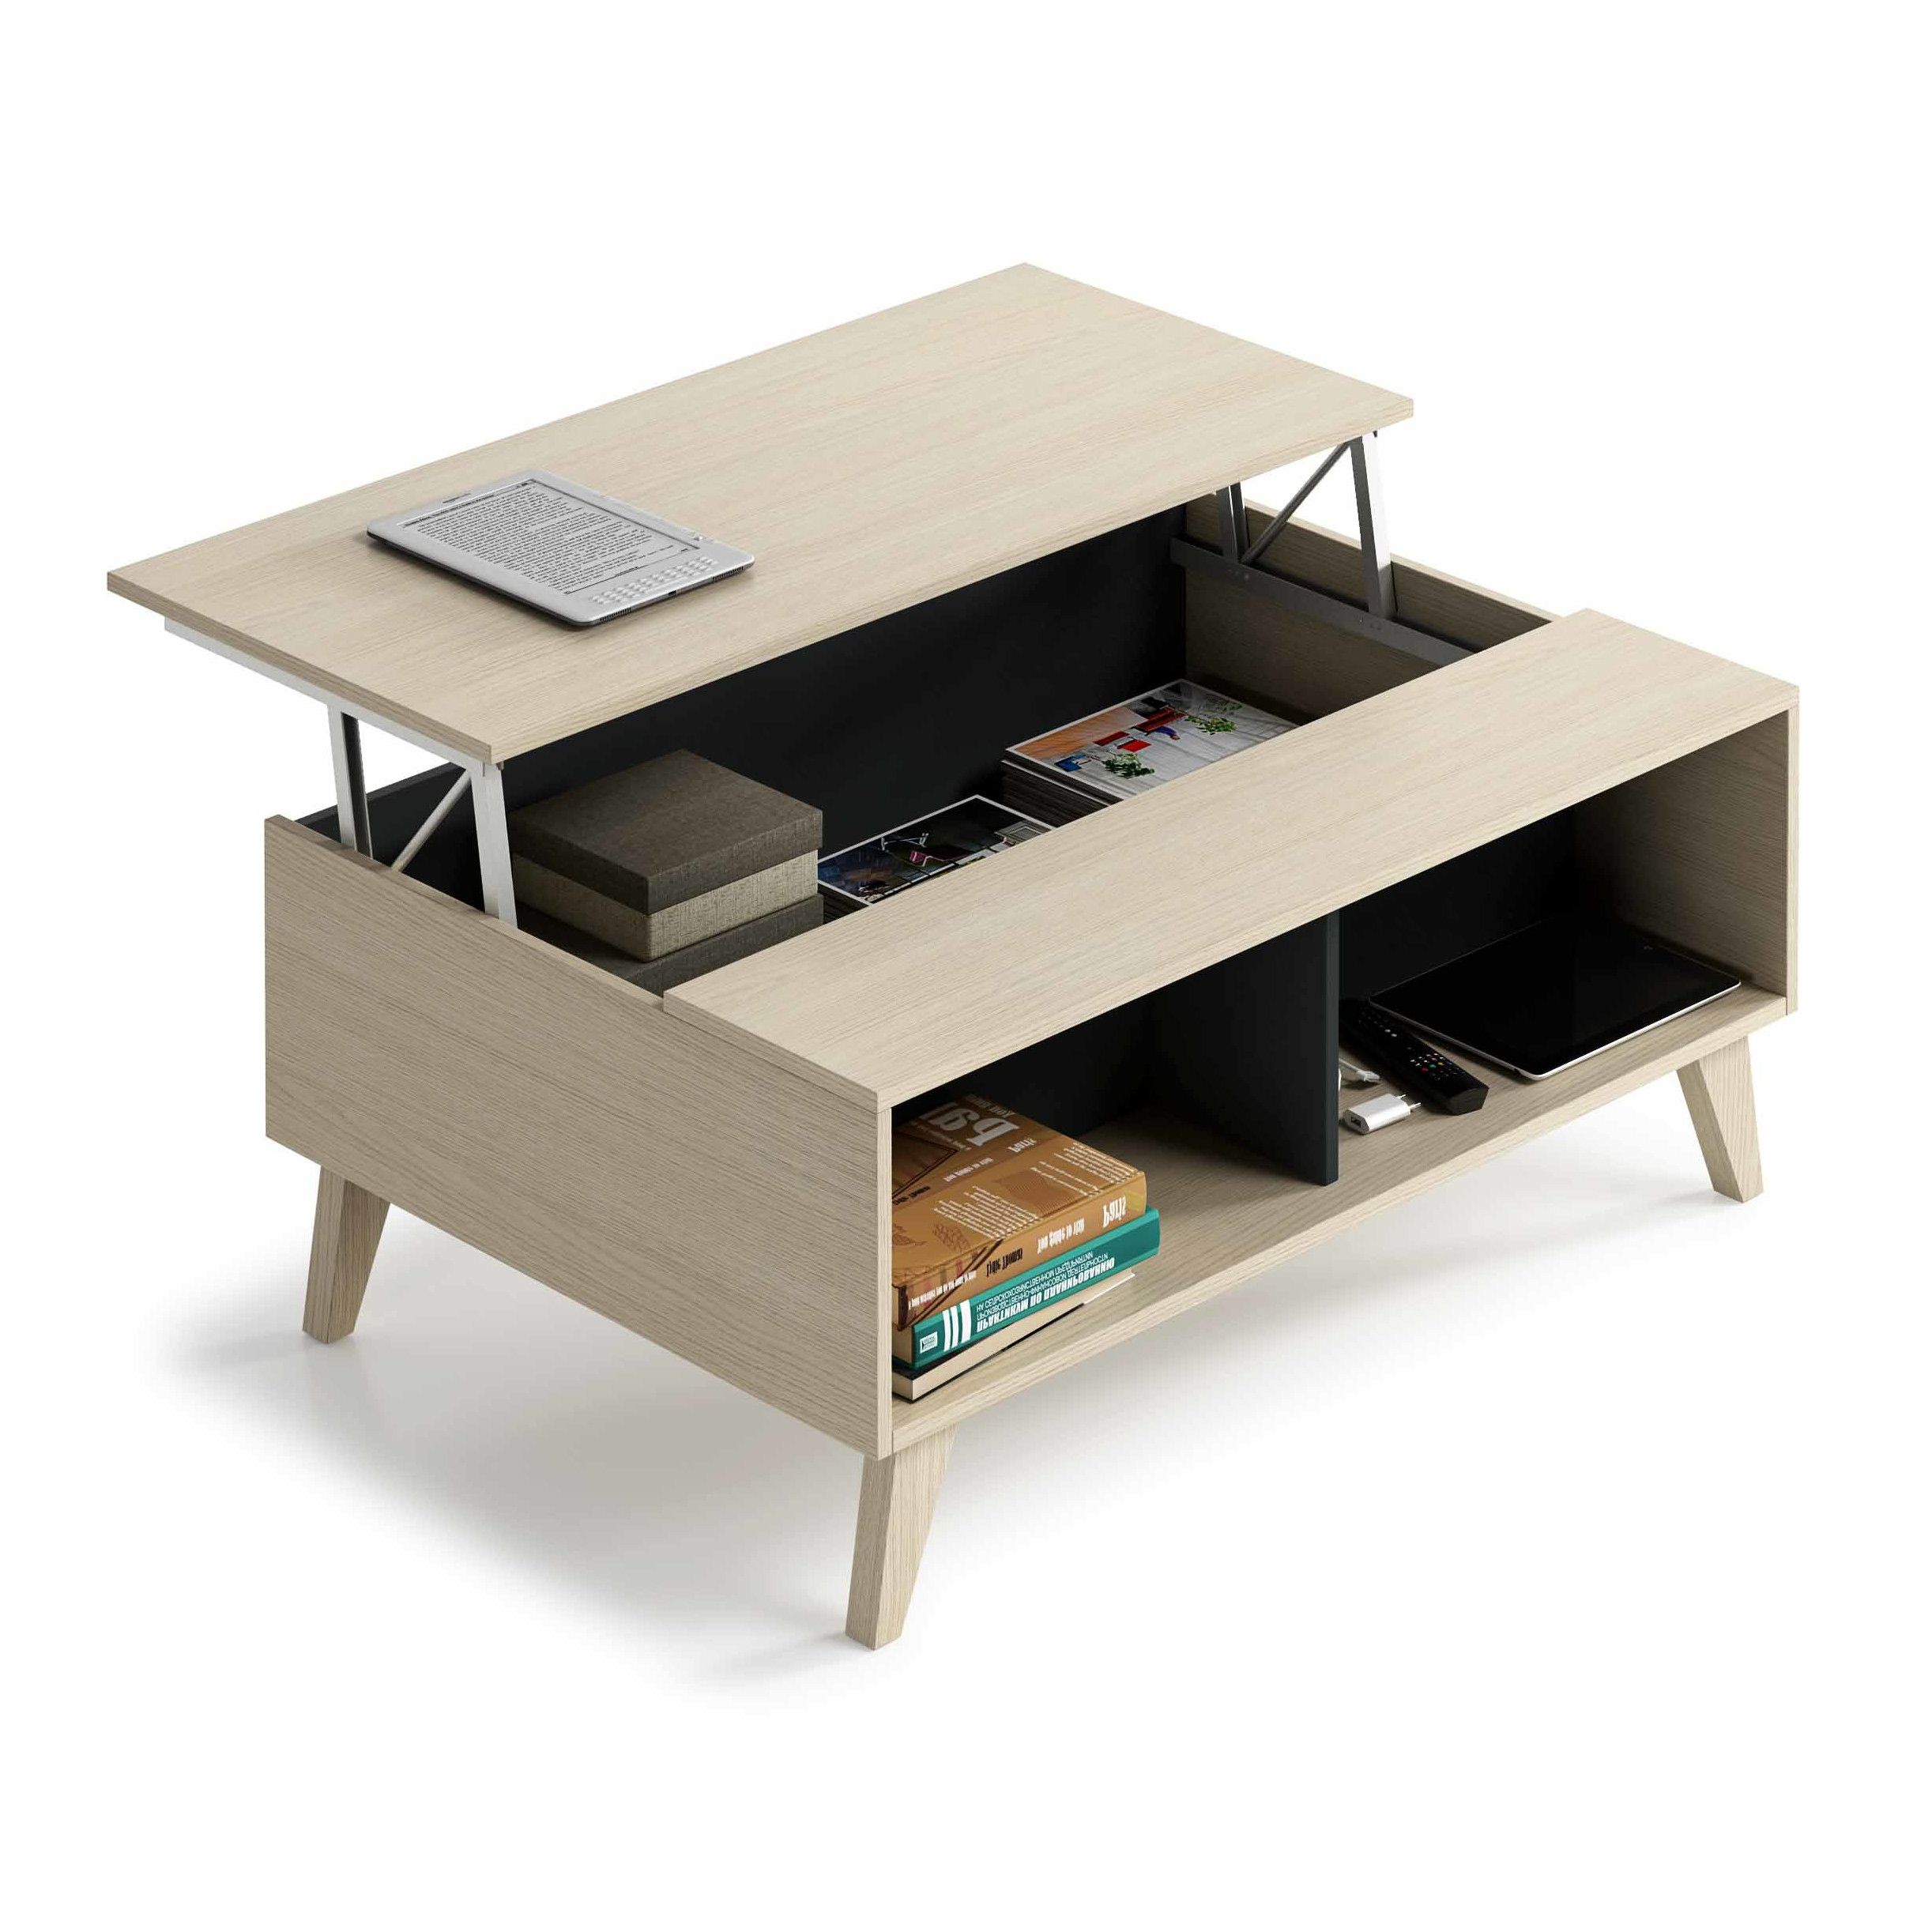 Dcor Design Stylus Coffee Table With Lift Top Coffee Table Coffee Table White Coffee Table With Storage